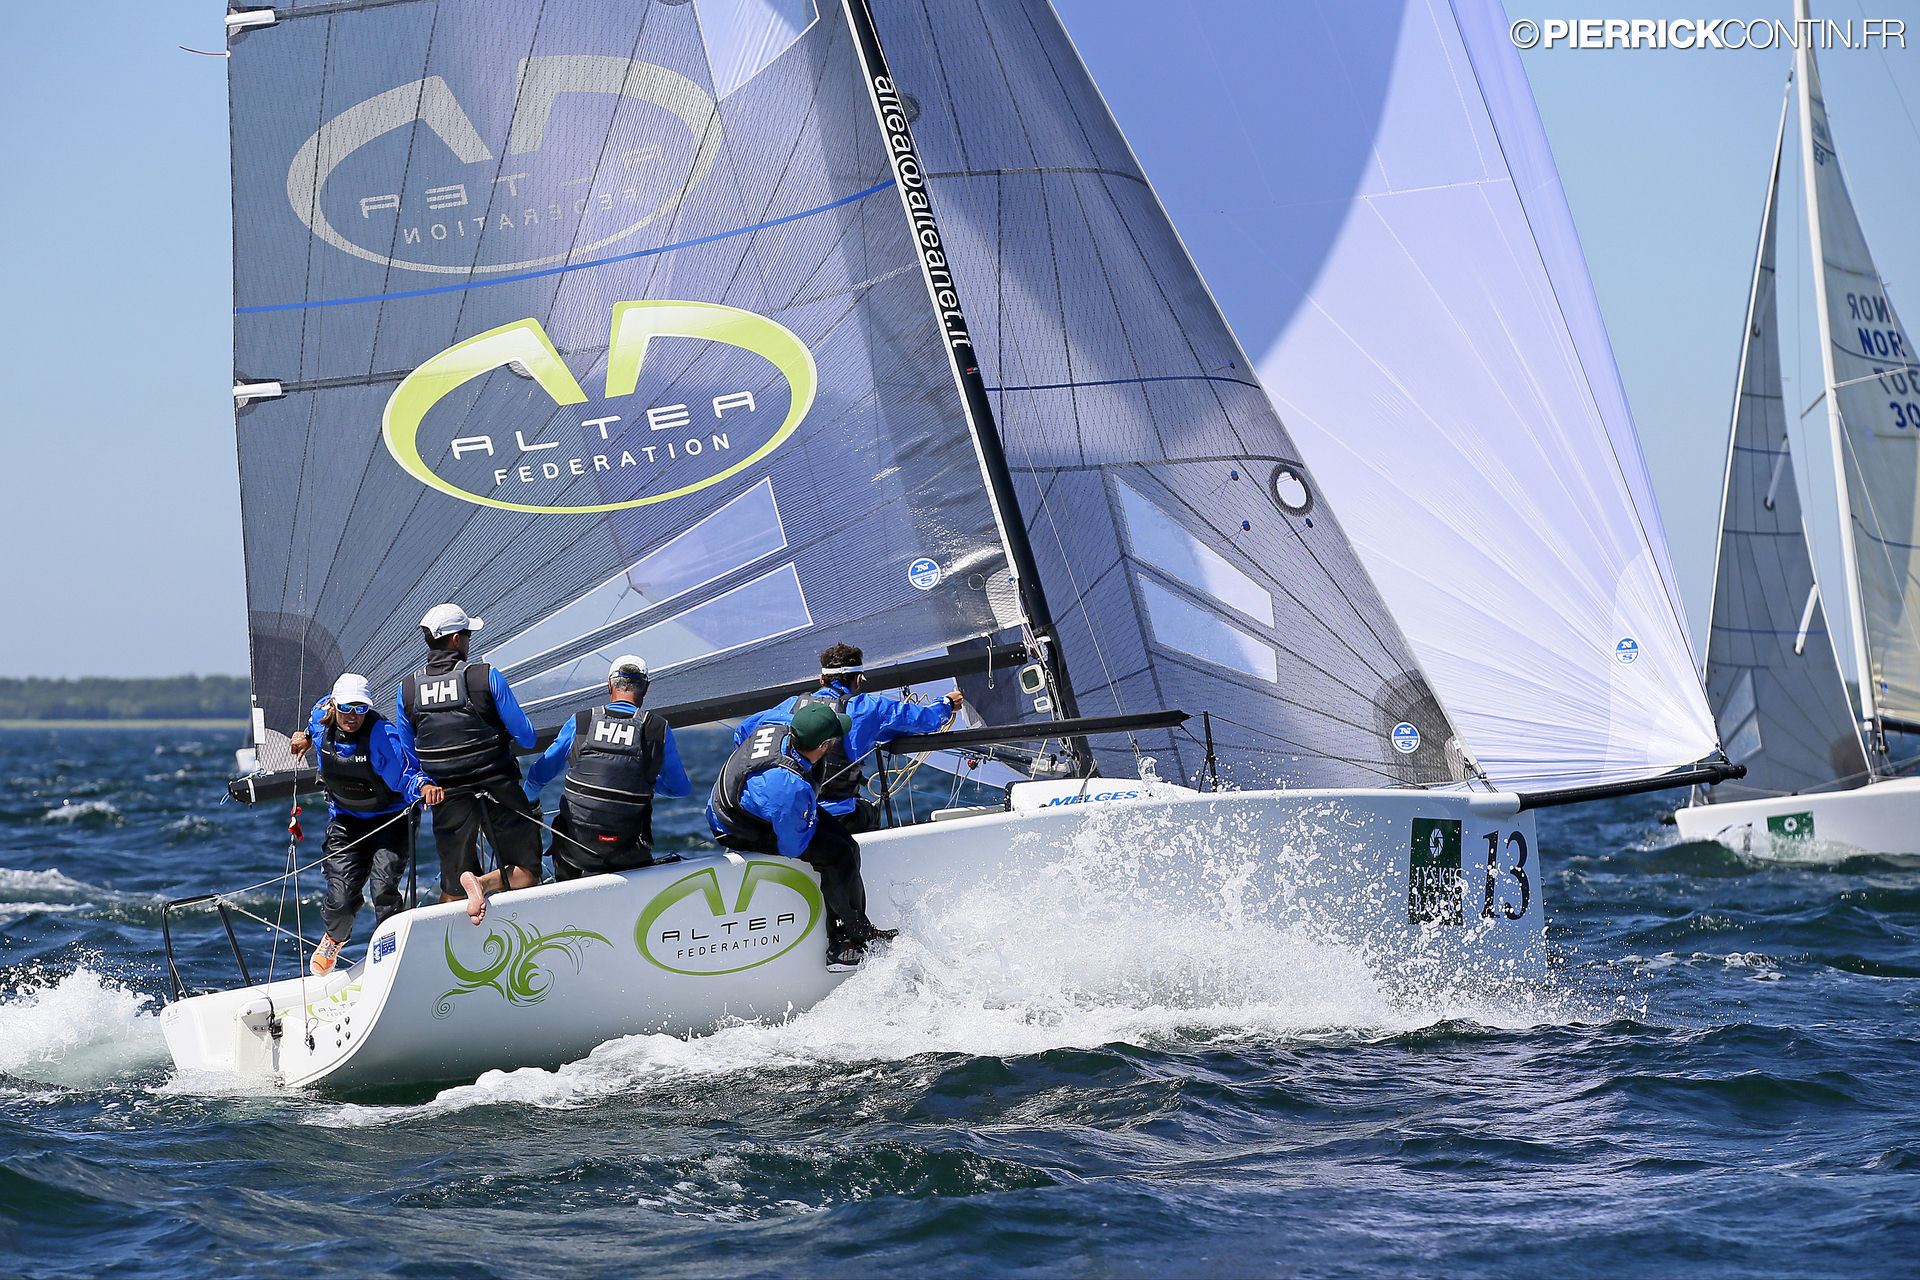 Altea Federation Sailing Team pronto per il 2016